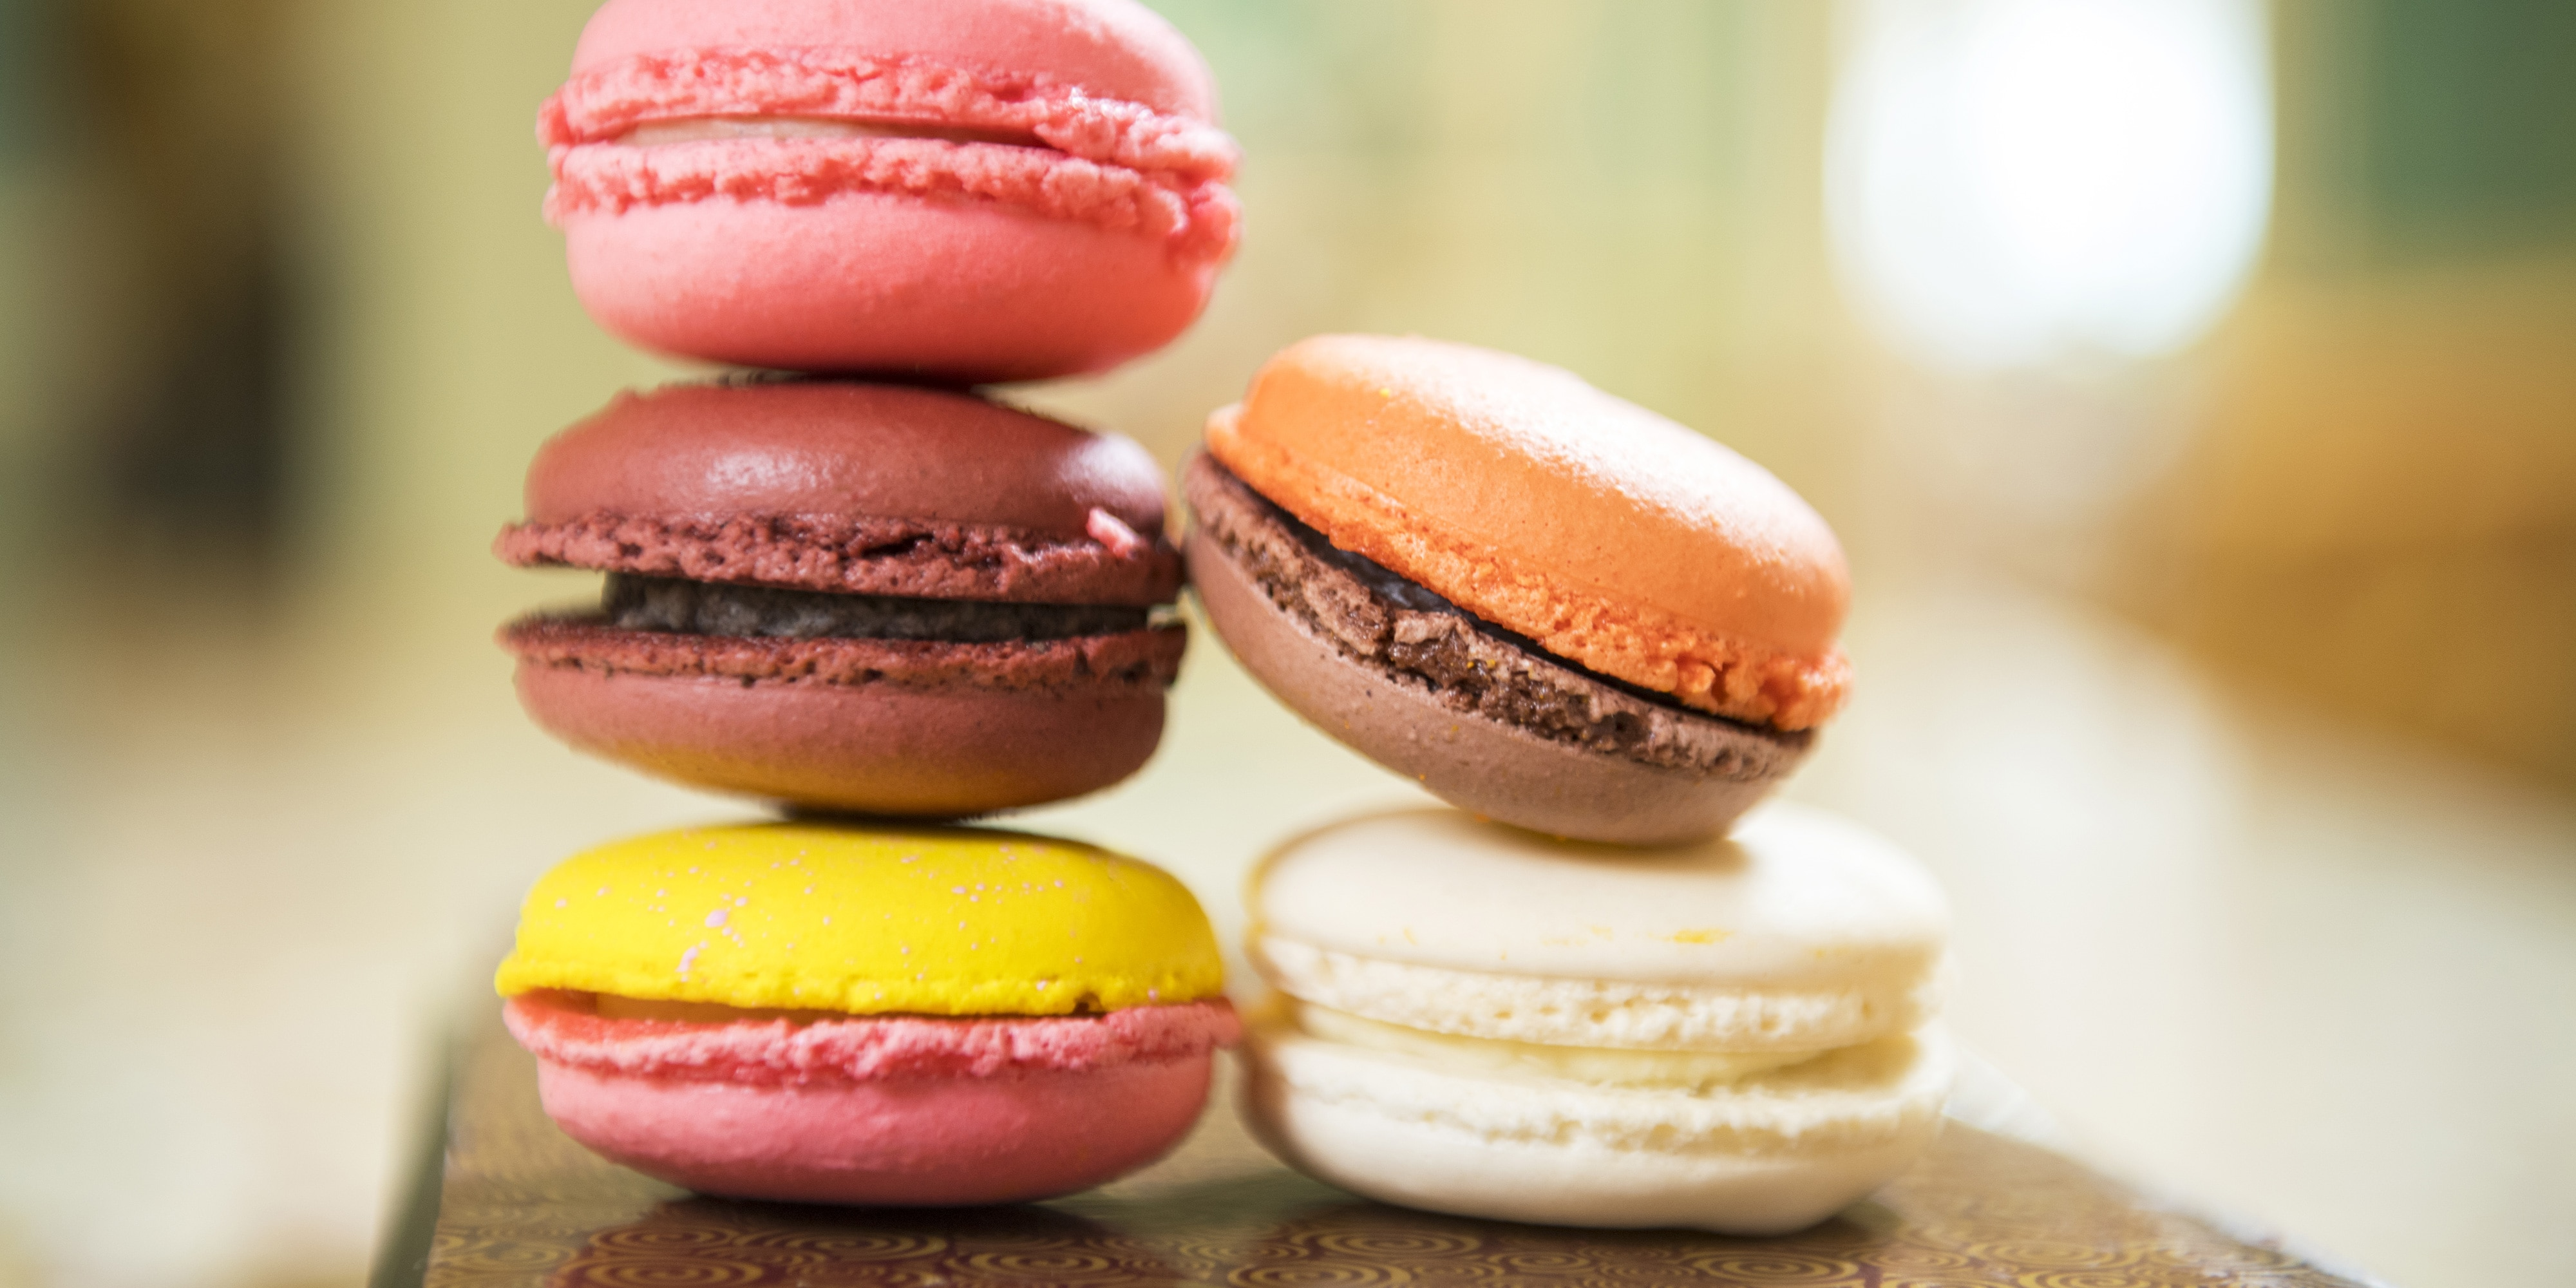 Two stacks of macarons, the popular French treat